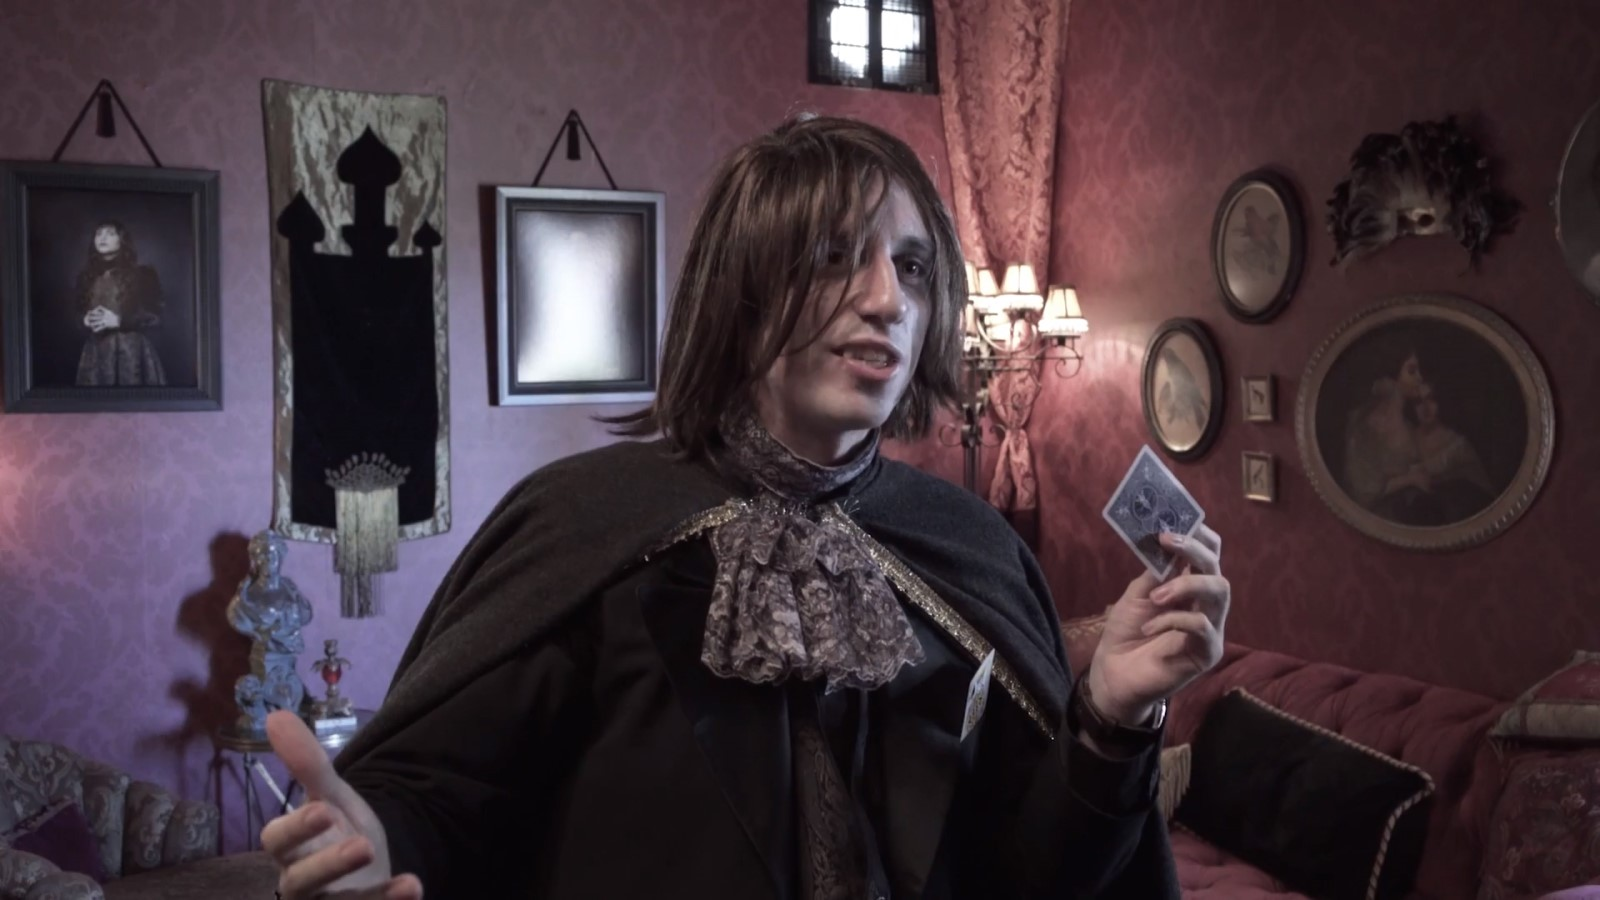 San Diego Comic Con, What We Do In The Shadows, Activation, FX, Video, Walkthrough